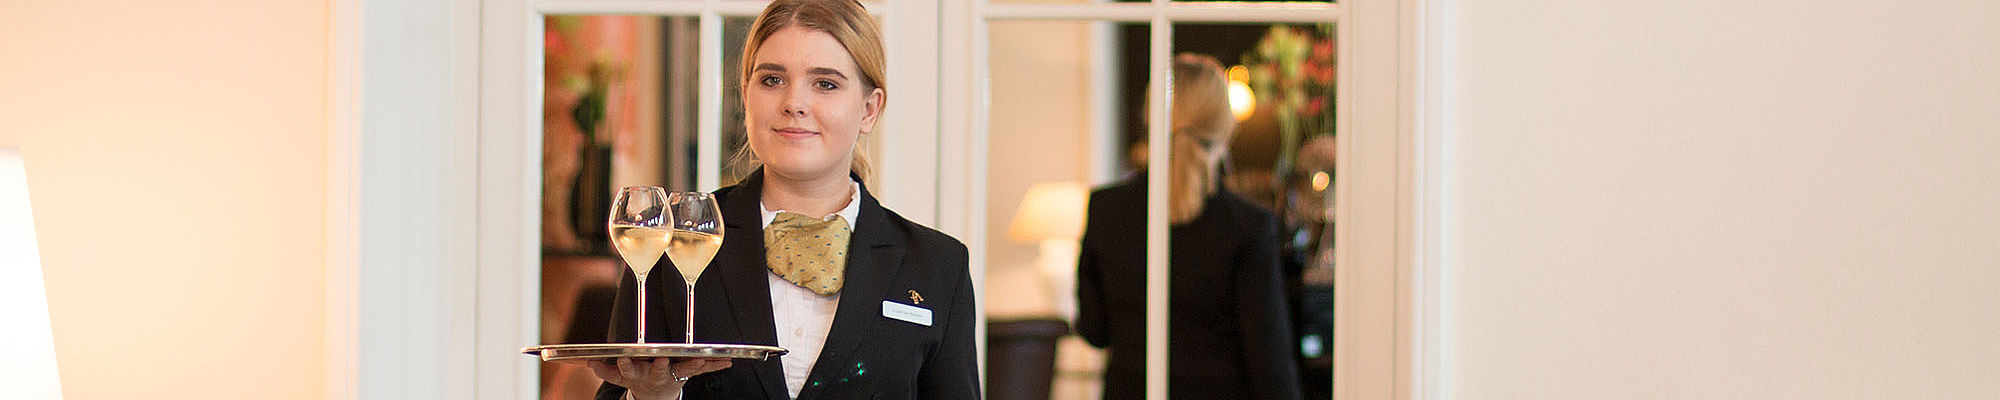 Internship and Placement - Busniess & Hotel Management School Lucerne